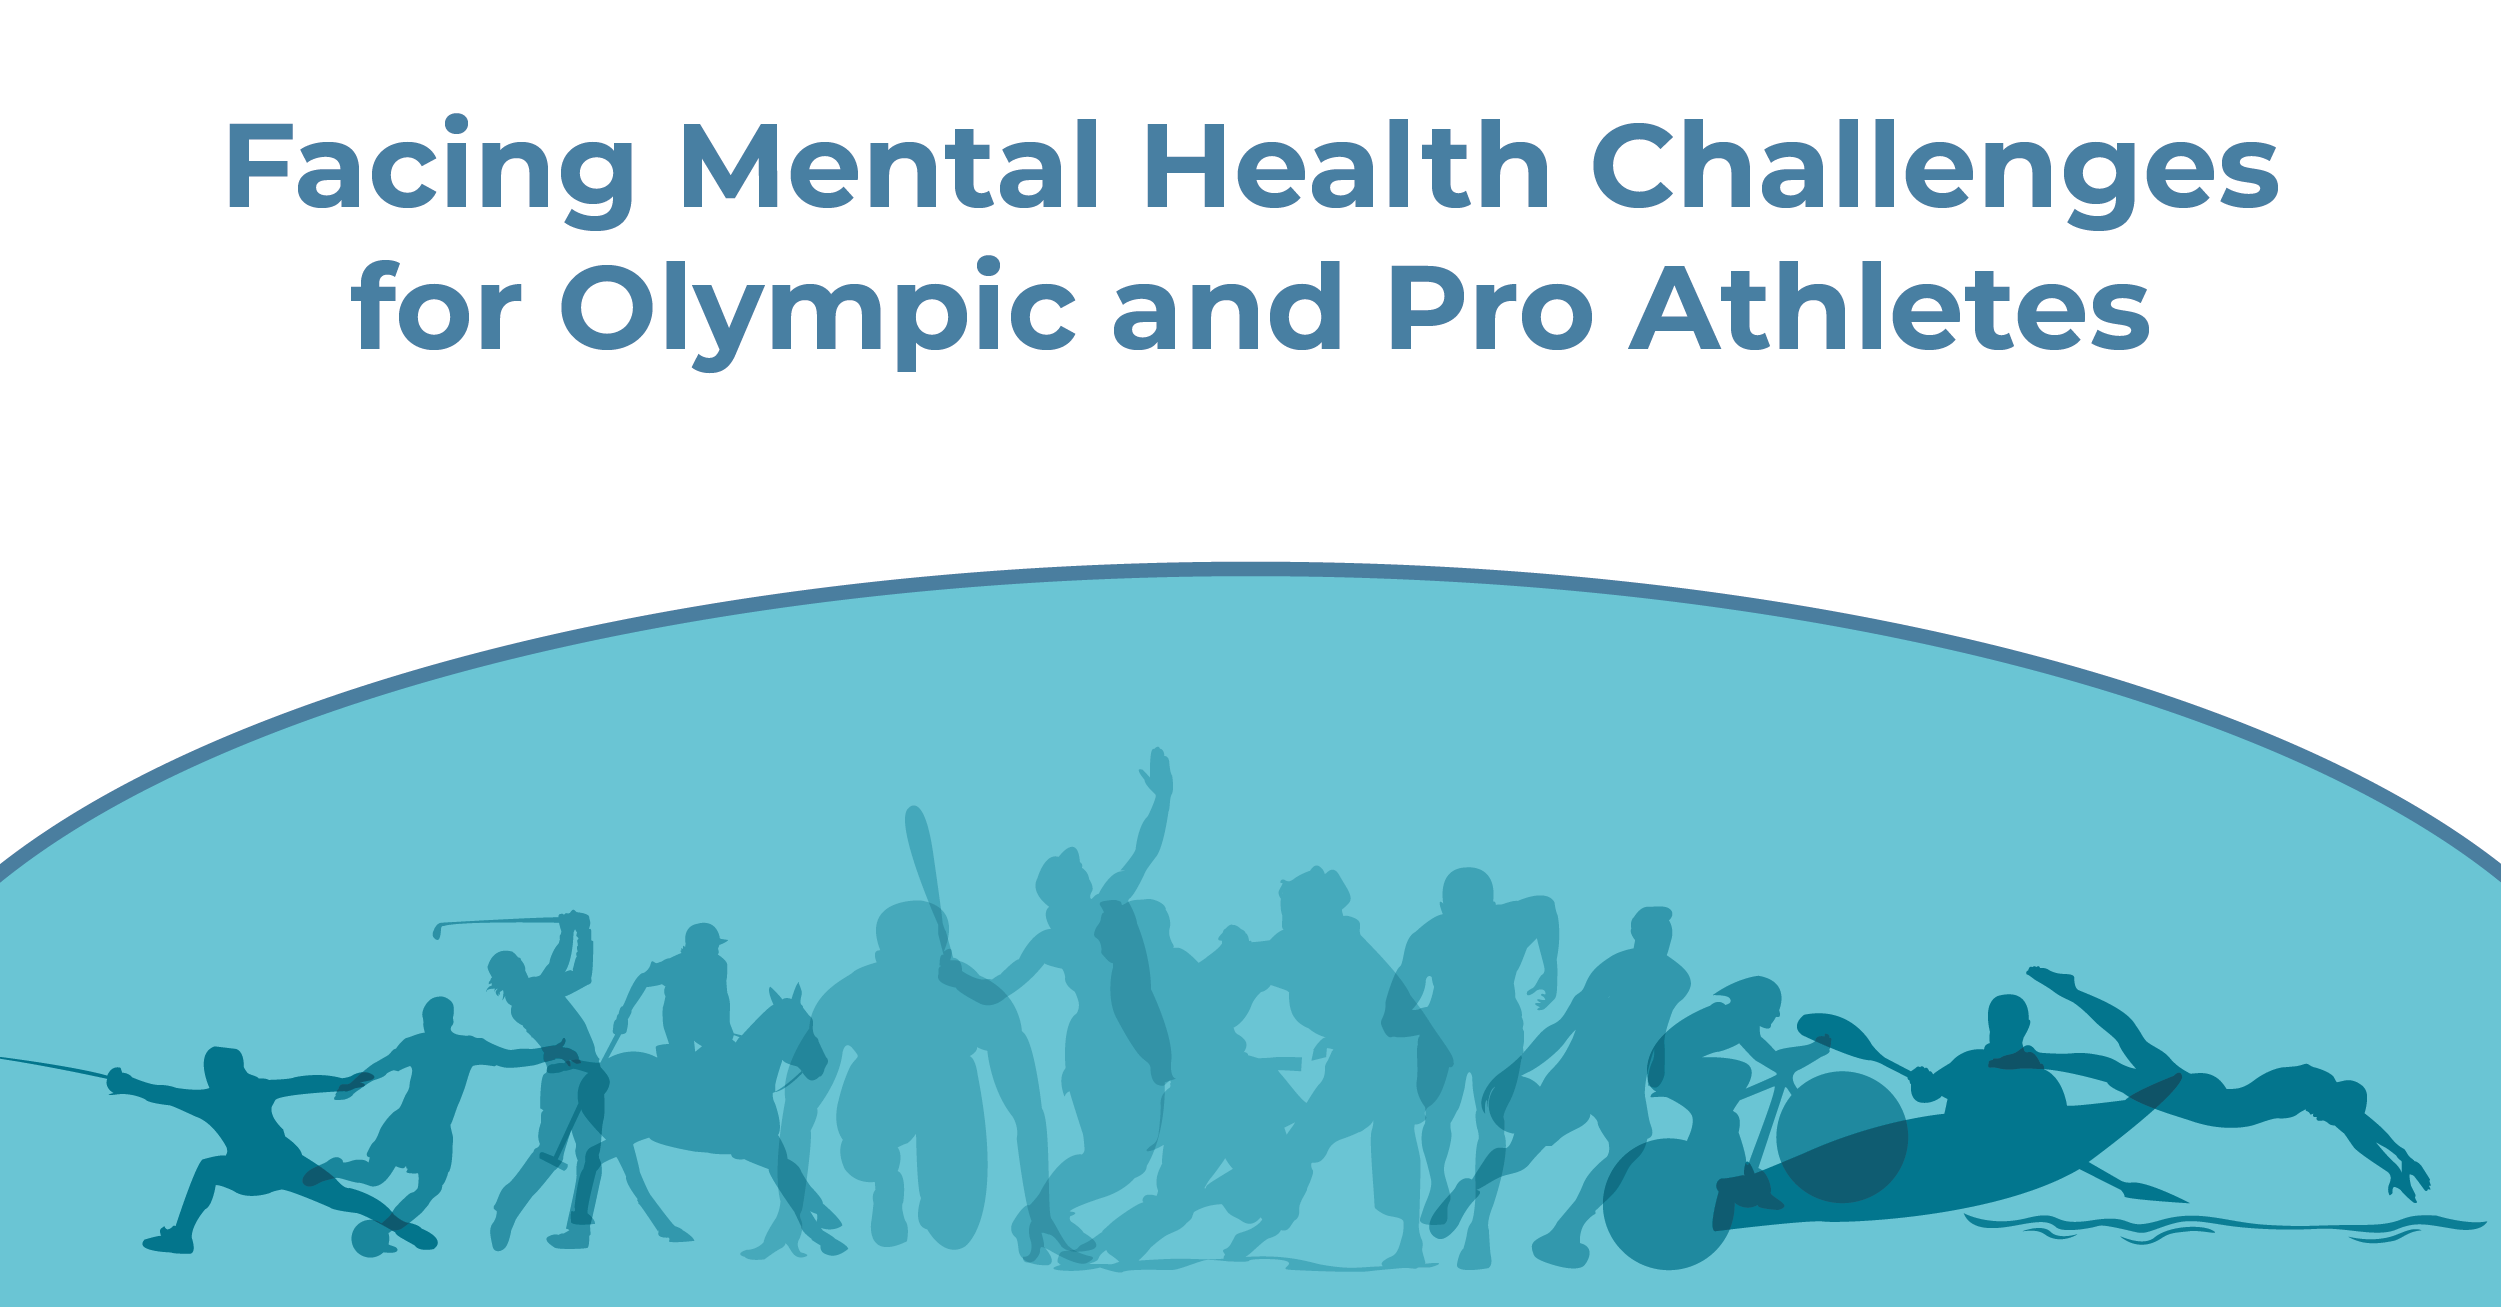 Facing Mental Health Challenges for Olympic and Pro Athletes